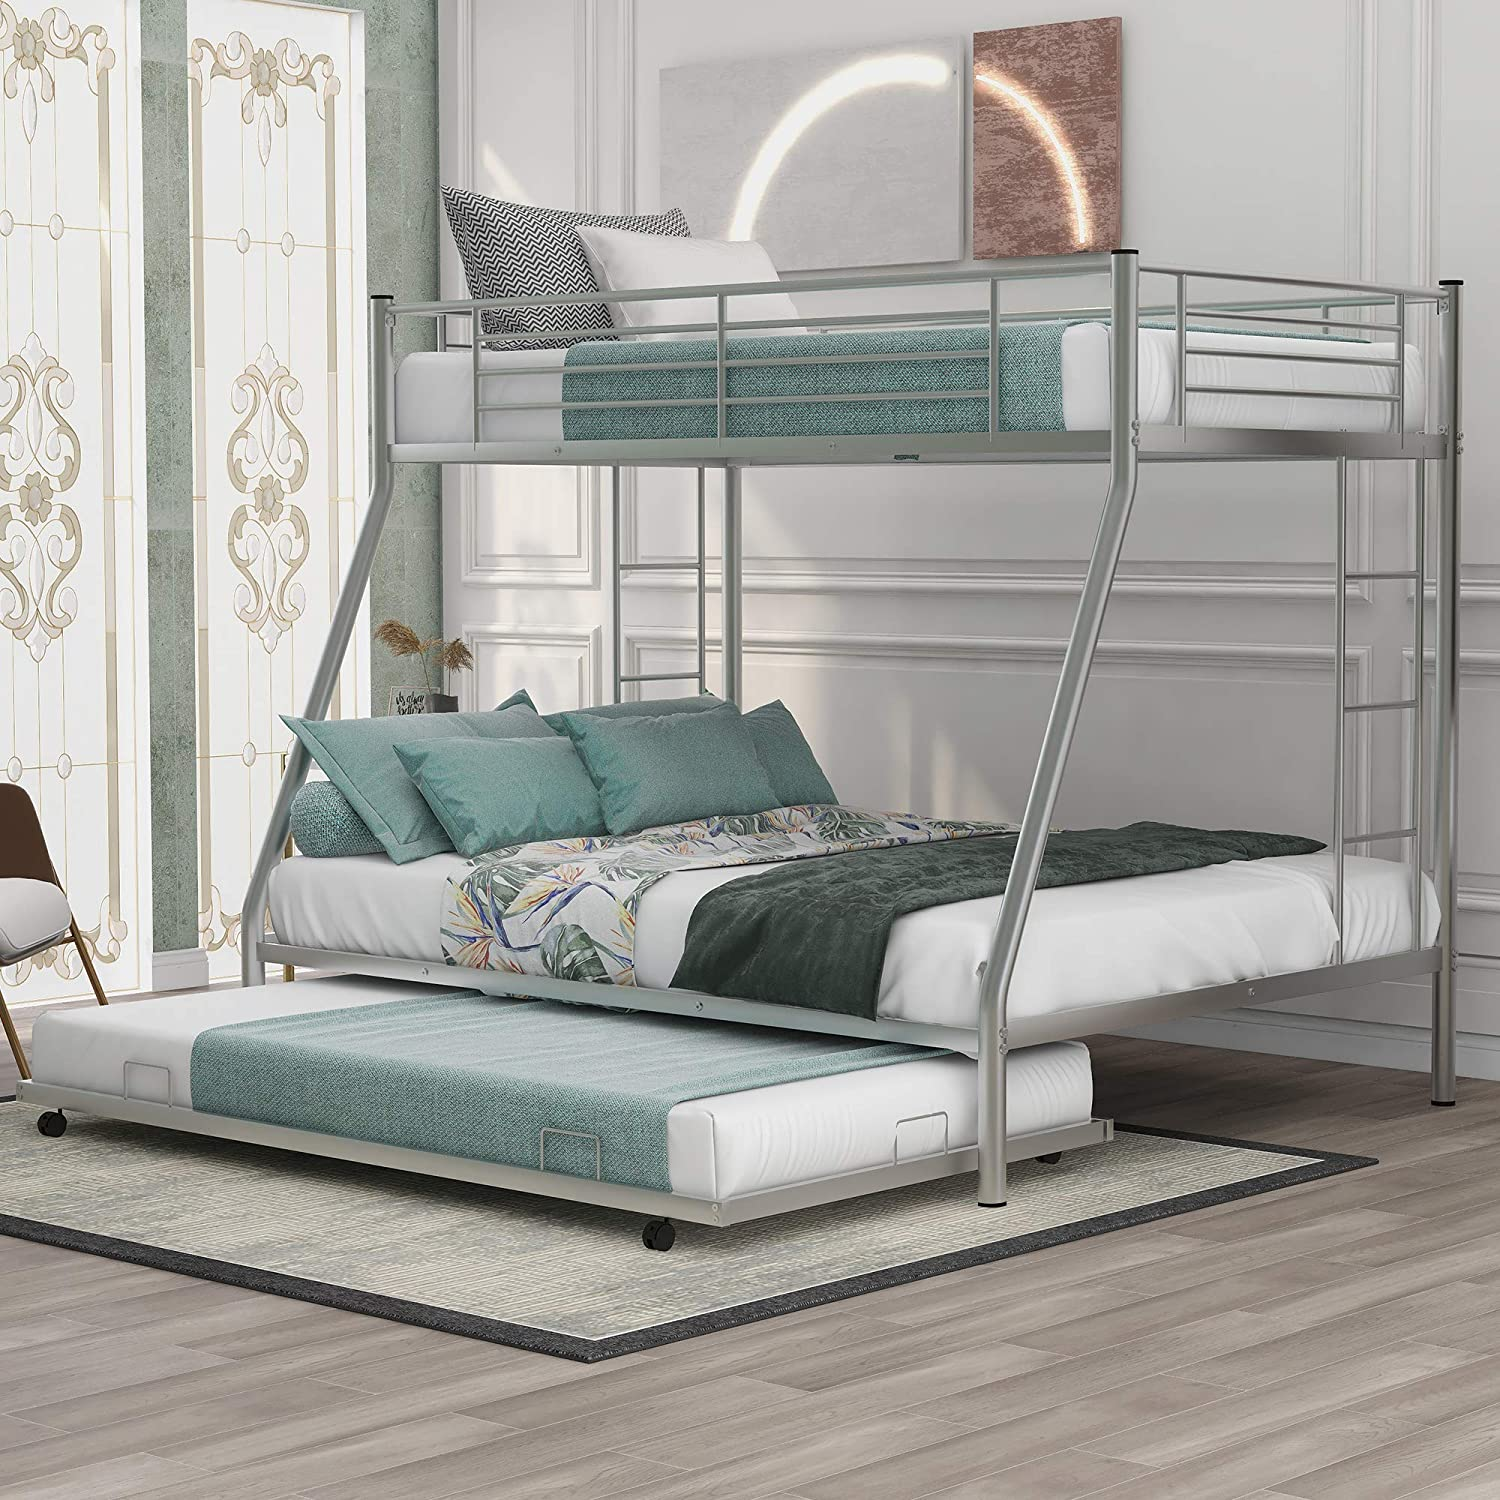 Knocbel Twin Surprise price Over Full Bunk Bed Trundle Pl Metal Long-awaited with Size